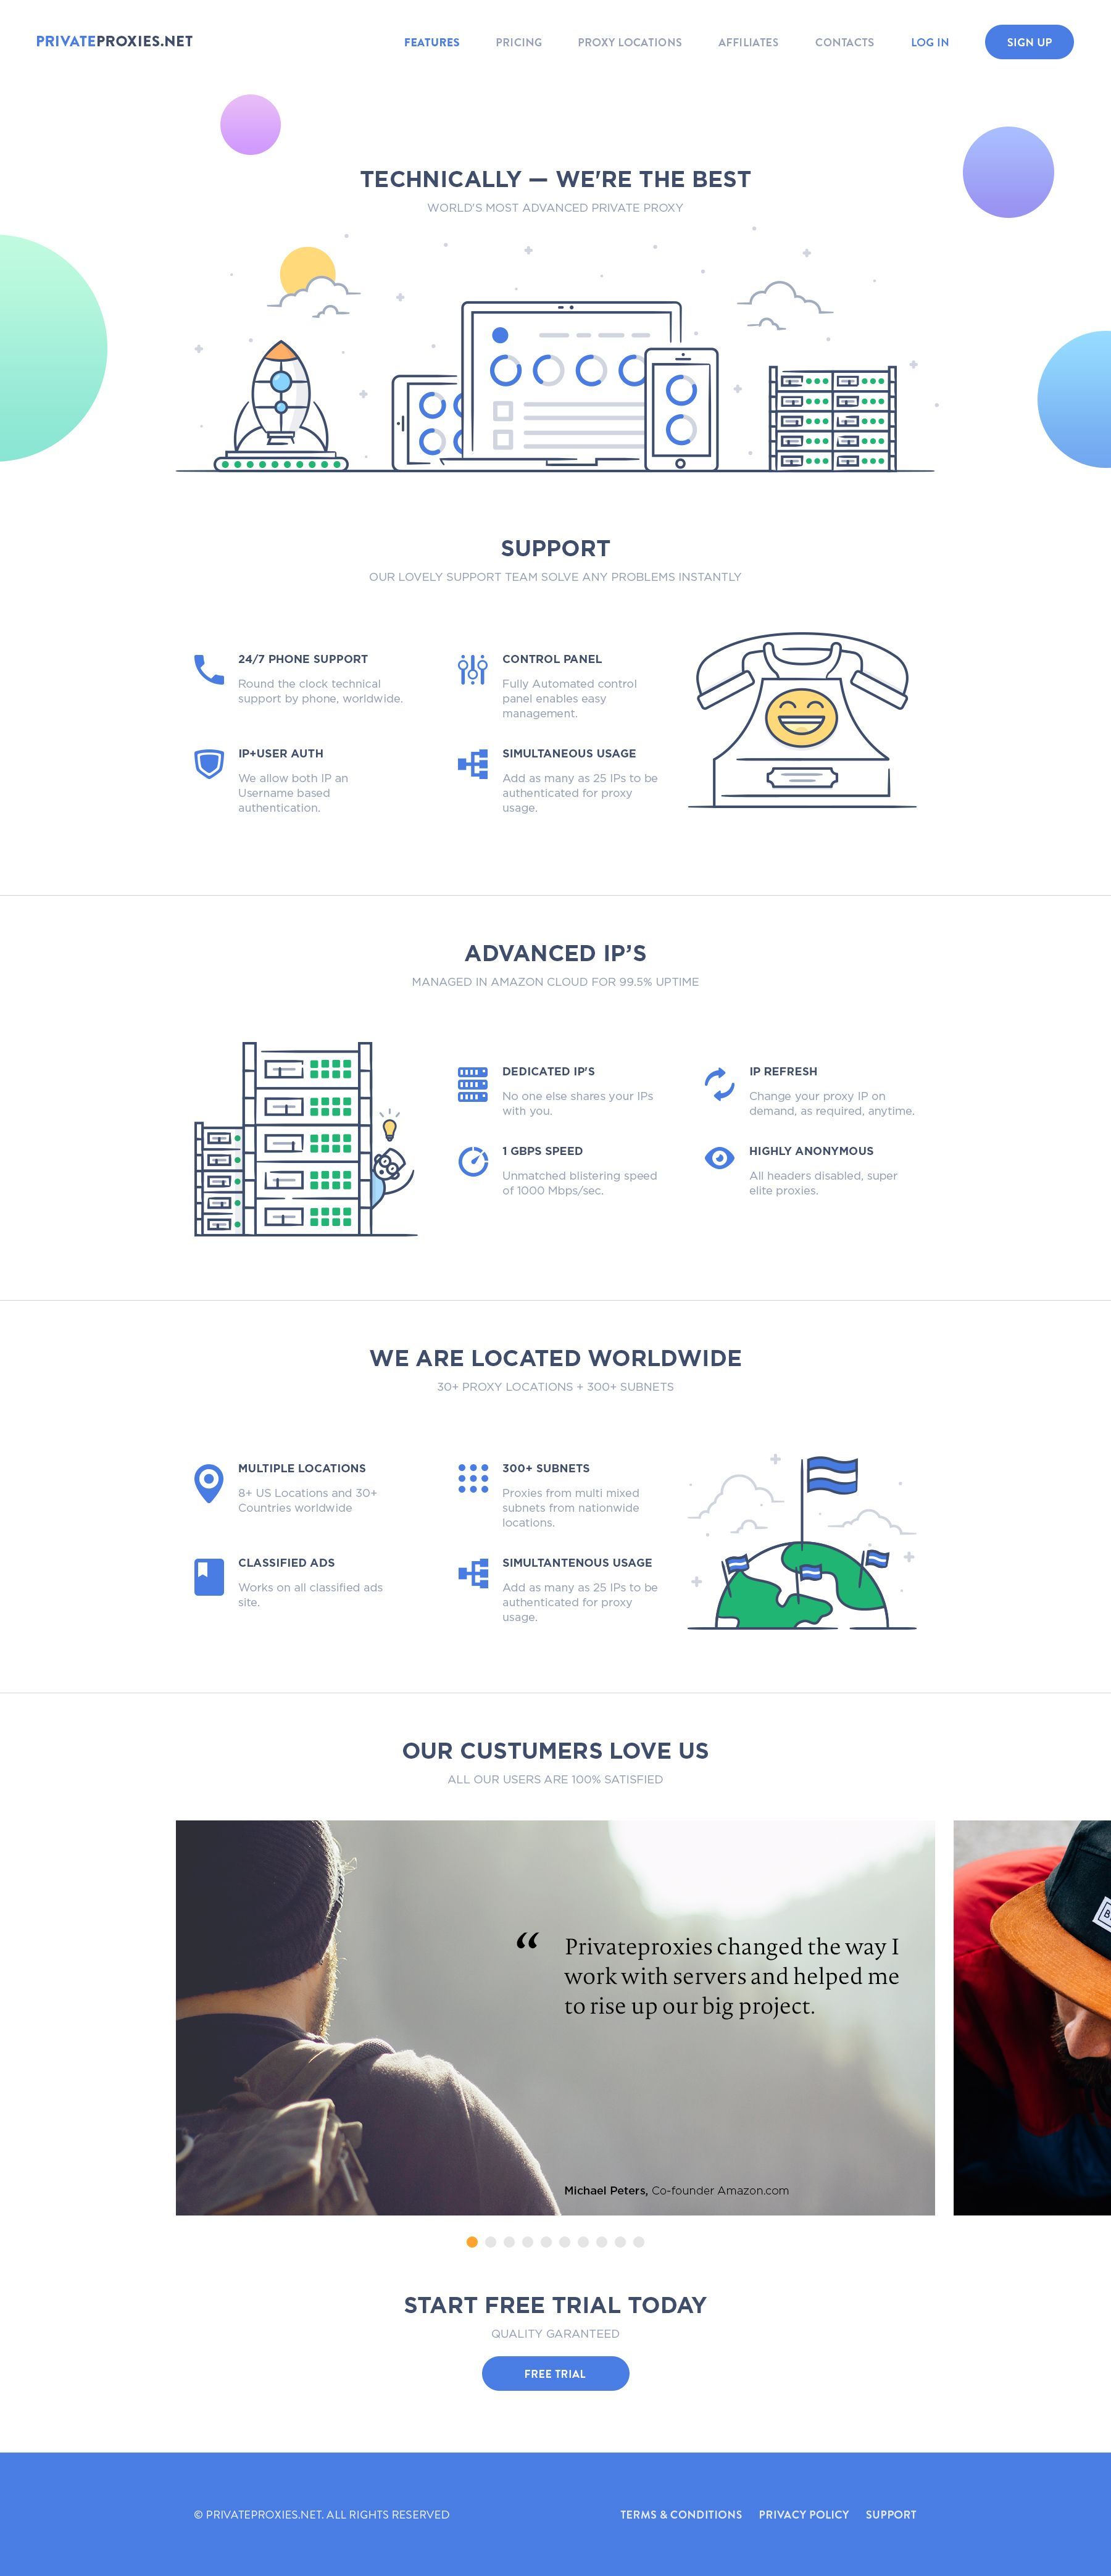 Dribbble - private_proxies_website_features__attachment.jpg by Fireart Studio